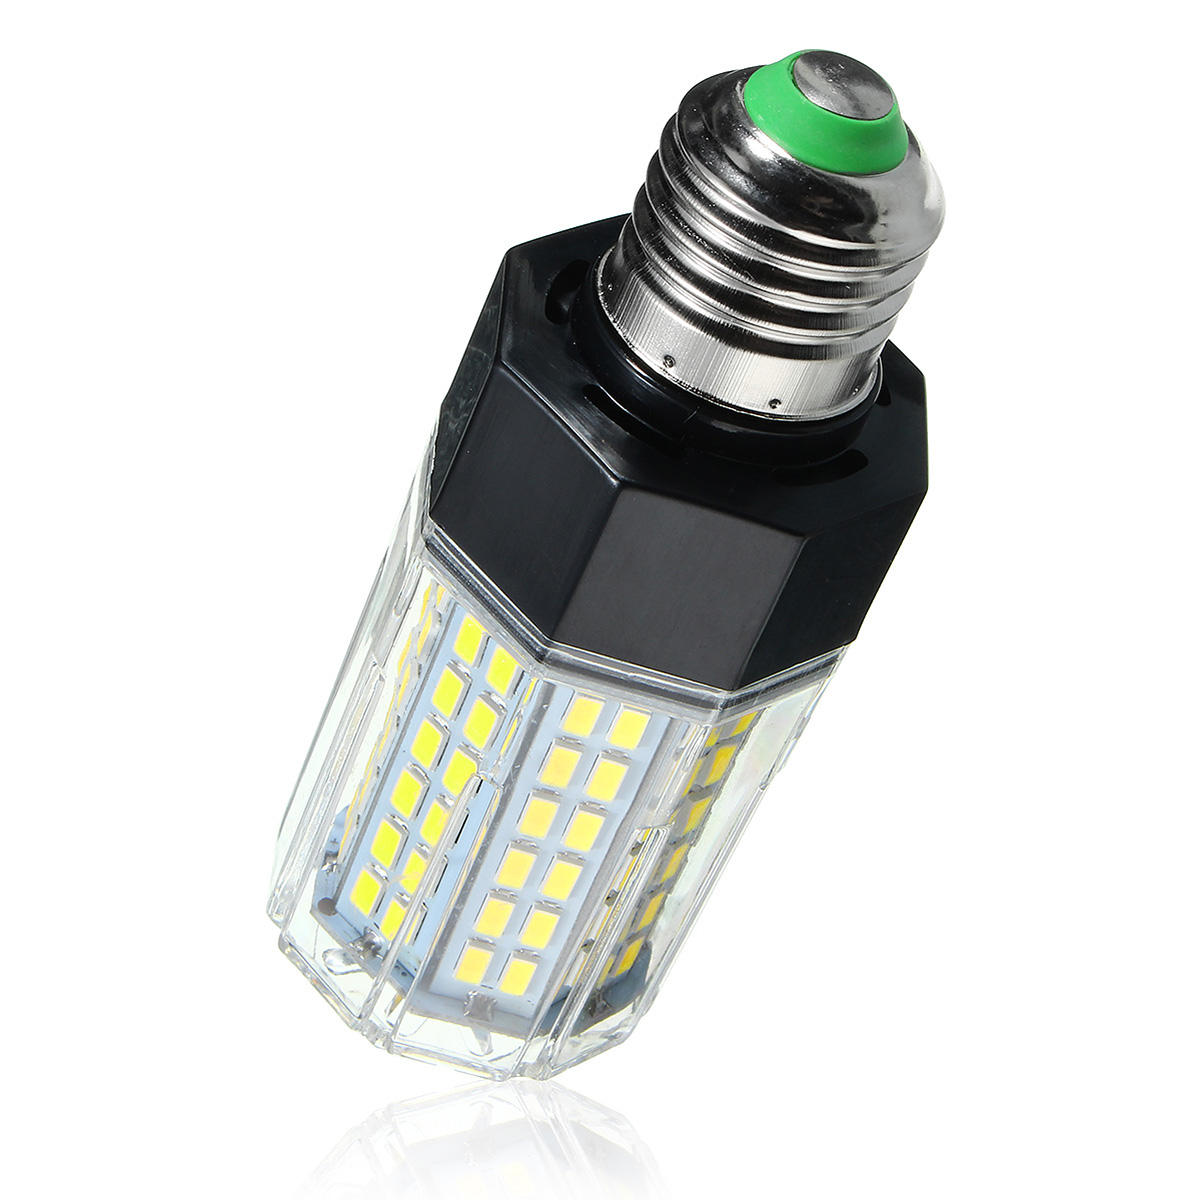 E27/E14/E12/B22/G9/GU10 LED Bulb 4W SMD 4014 56 400LM Pure White/Warm White Corn Light Lamp AC 220V - 6